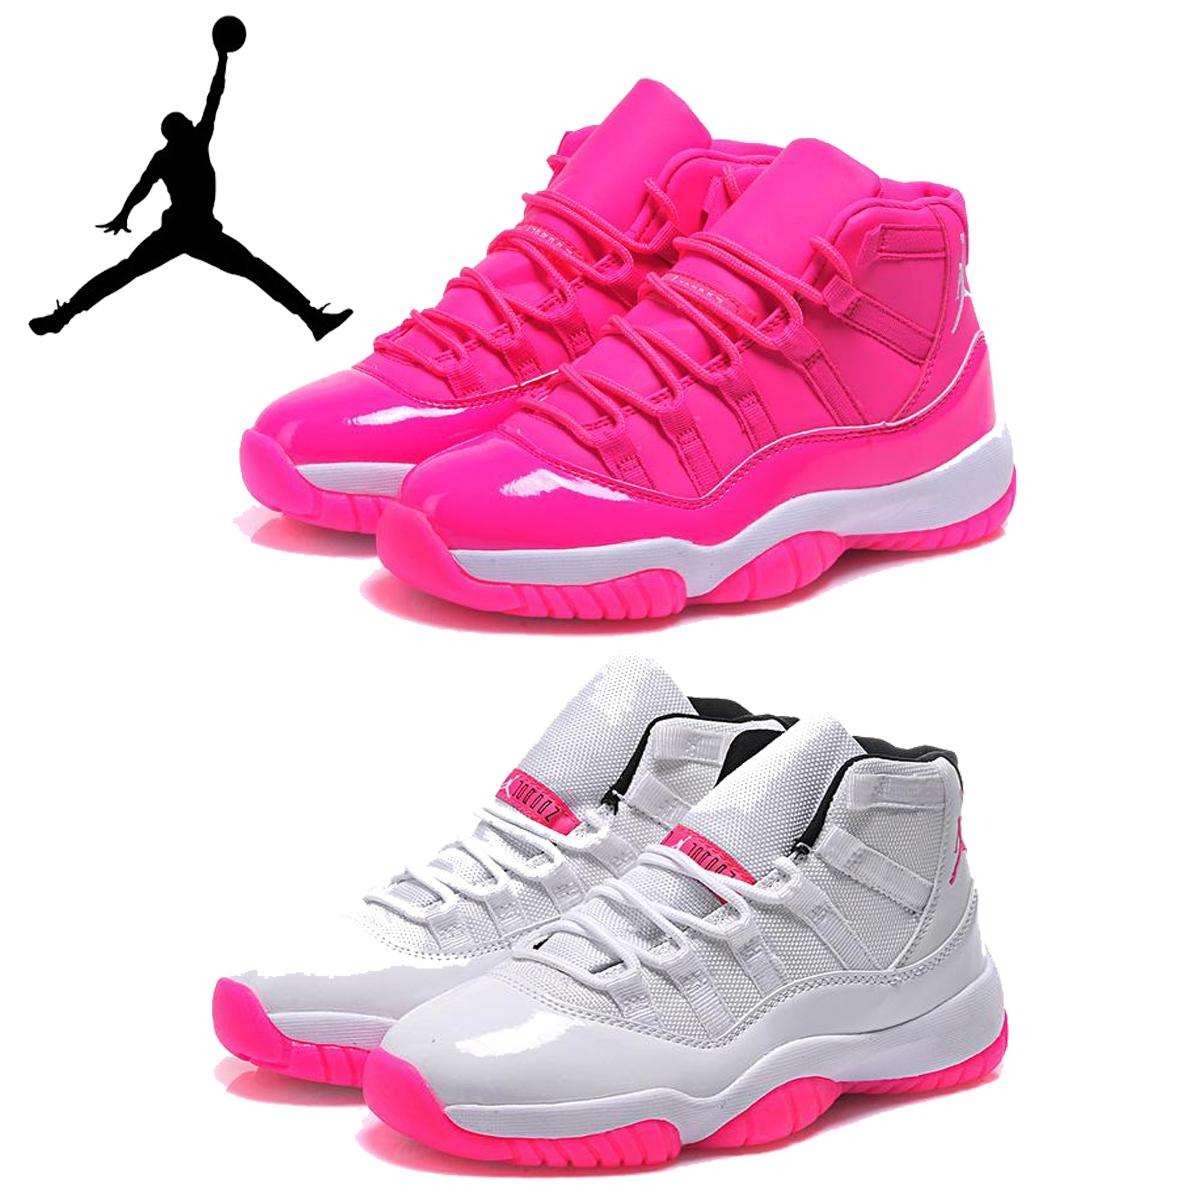 Nike Air Jordan 11 Basketball Shoes Womens Retros Xi Hot Pink Basketball  Shoe Girls Sports Shoes Grey Comfortable 2016 Trainers Sneakers For Men Shoes  For ...